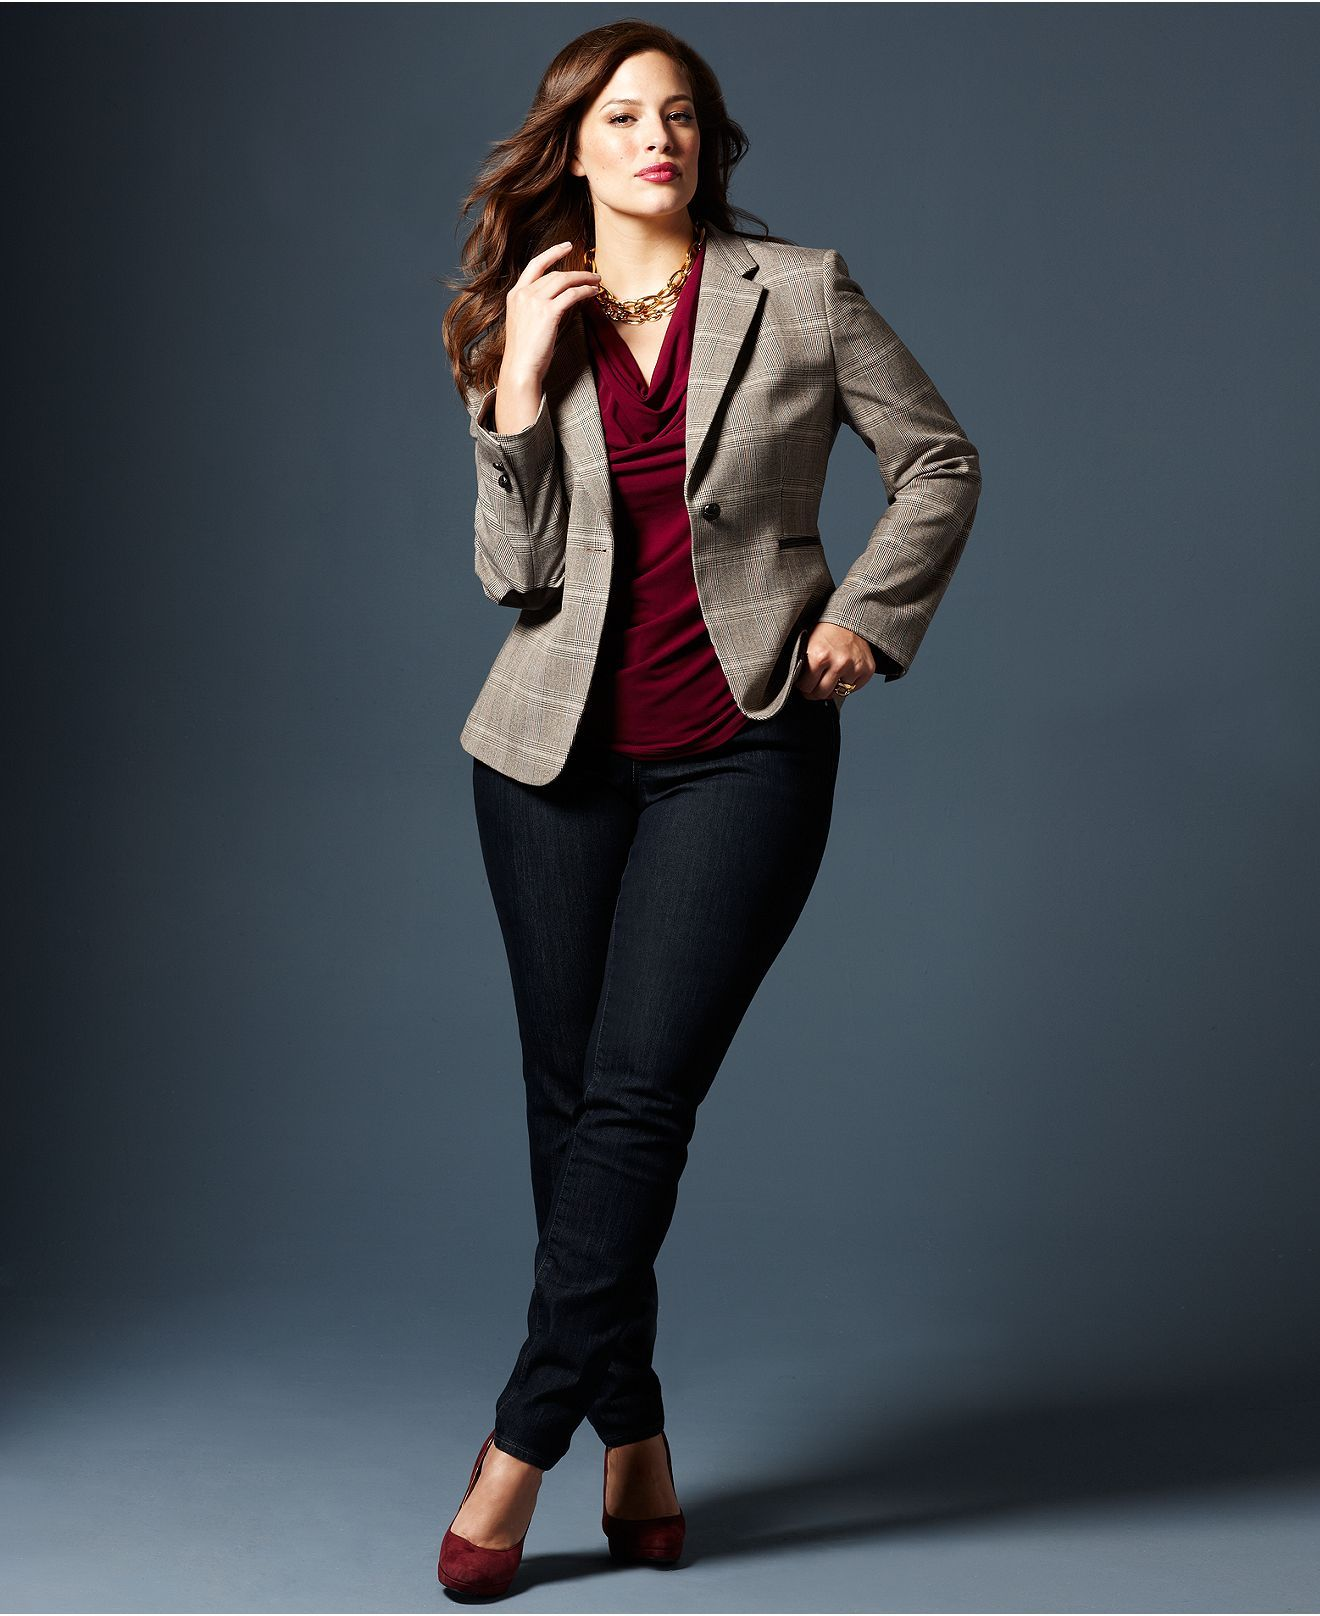 b2bea48582af Work outfit - Fall Trend Report Plus Size Jackets Preferred Blazer   Jeans  Look - Women - Macy s